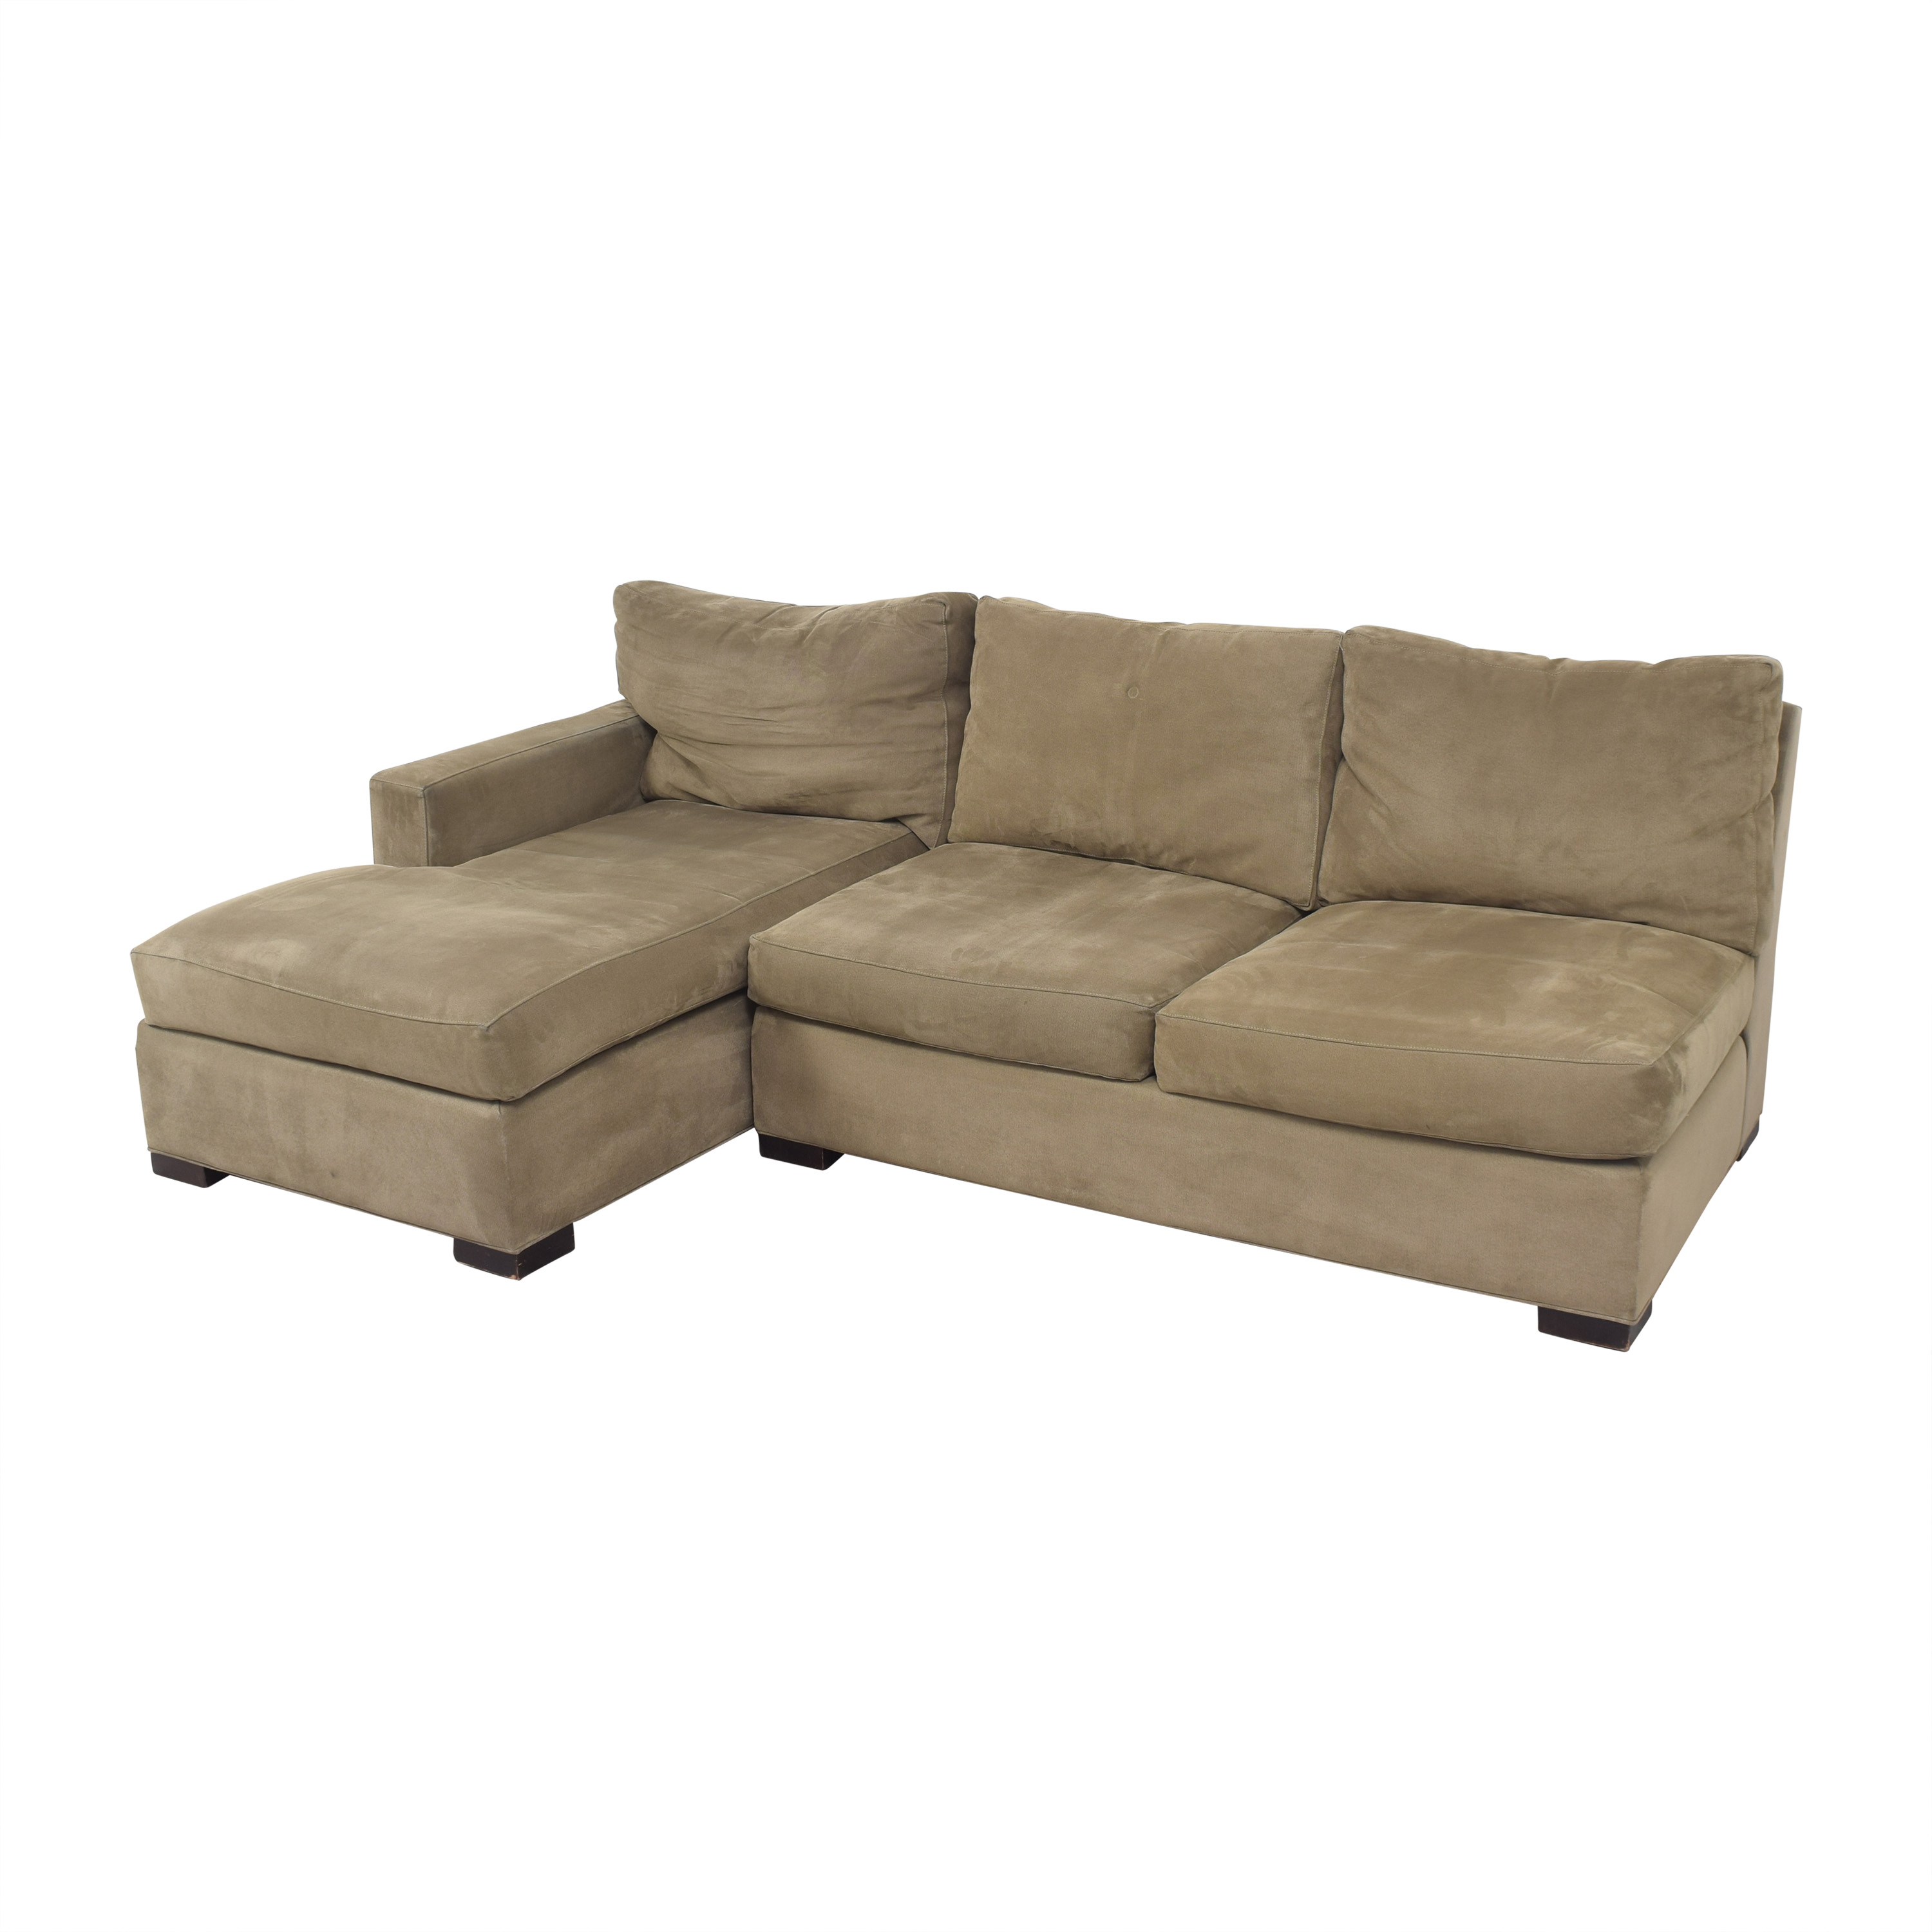 Crate & Barrel Crate & Barrel Axis II Chaise Sectional Sofa on sale